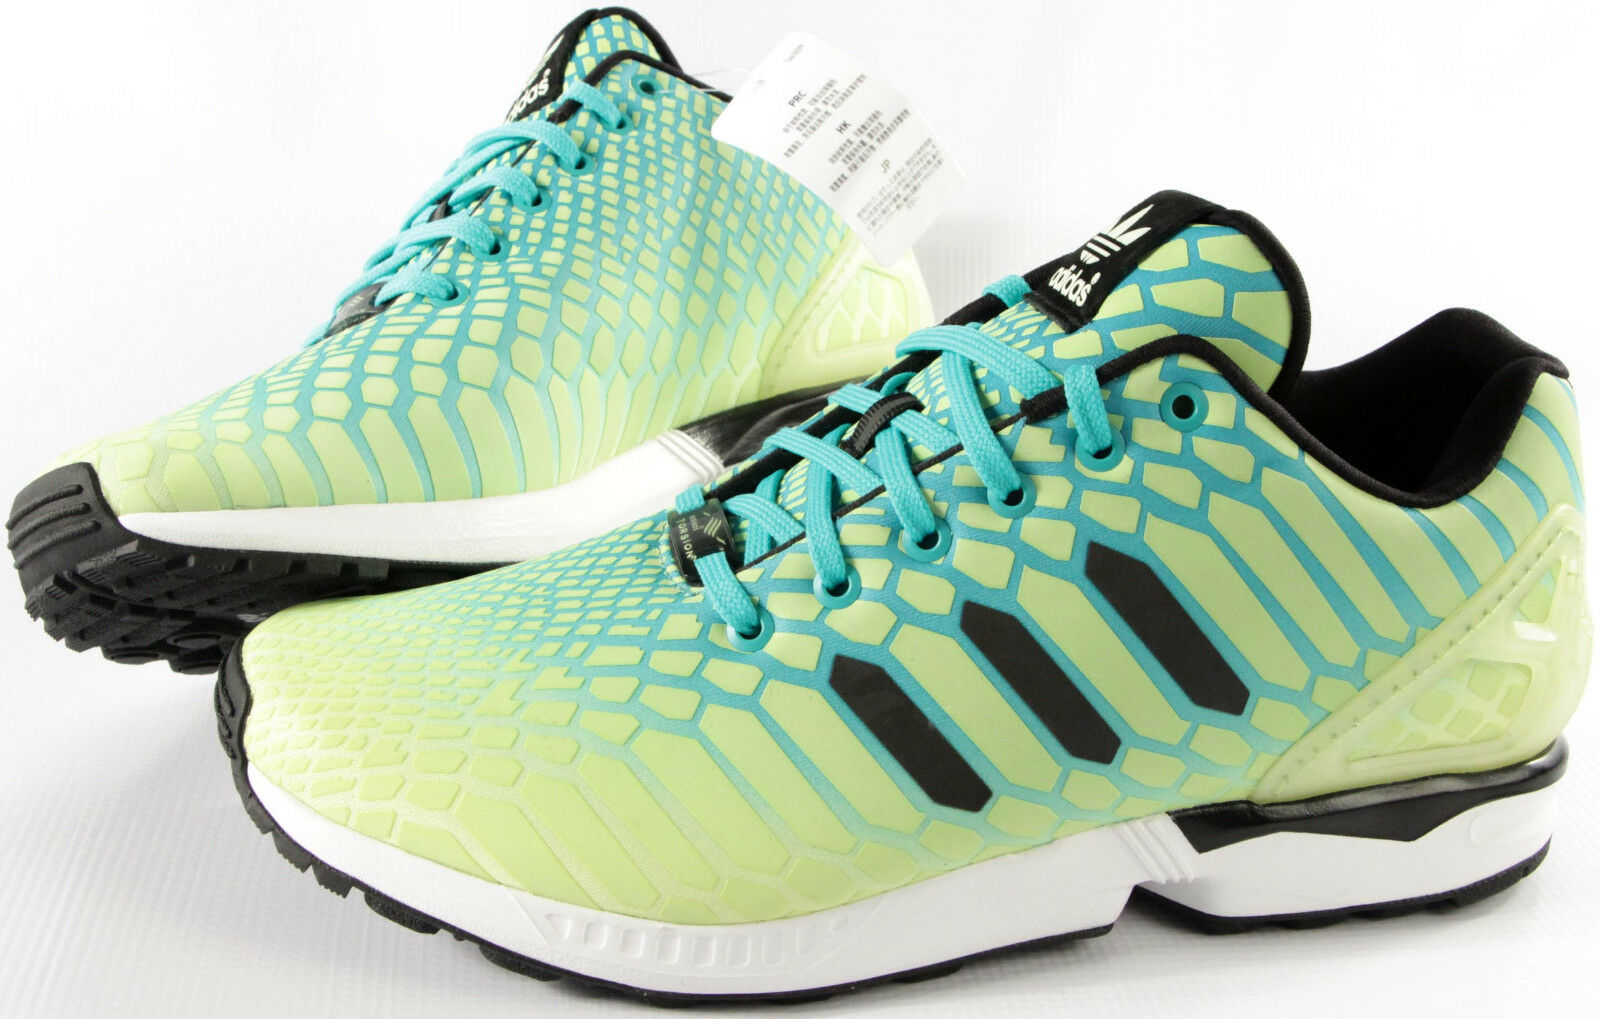 ADIDAS Originals ZX FLUX Xeno shoes-NEW-classic GLOW retro running sneakers-